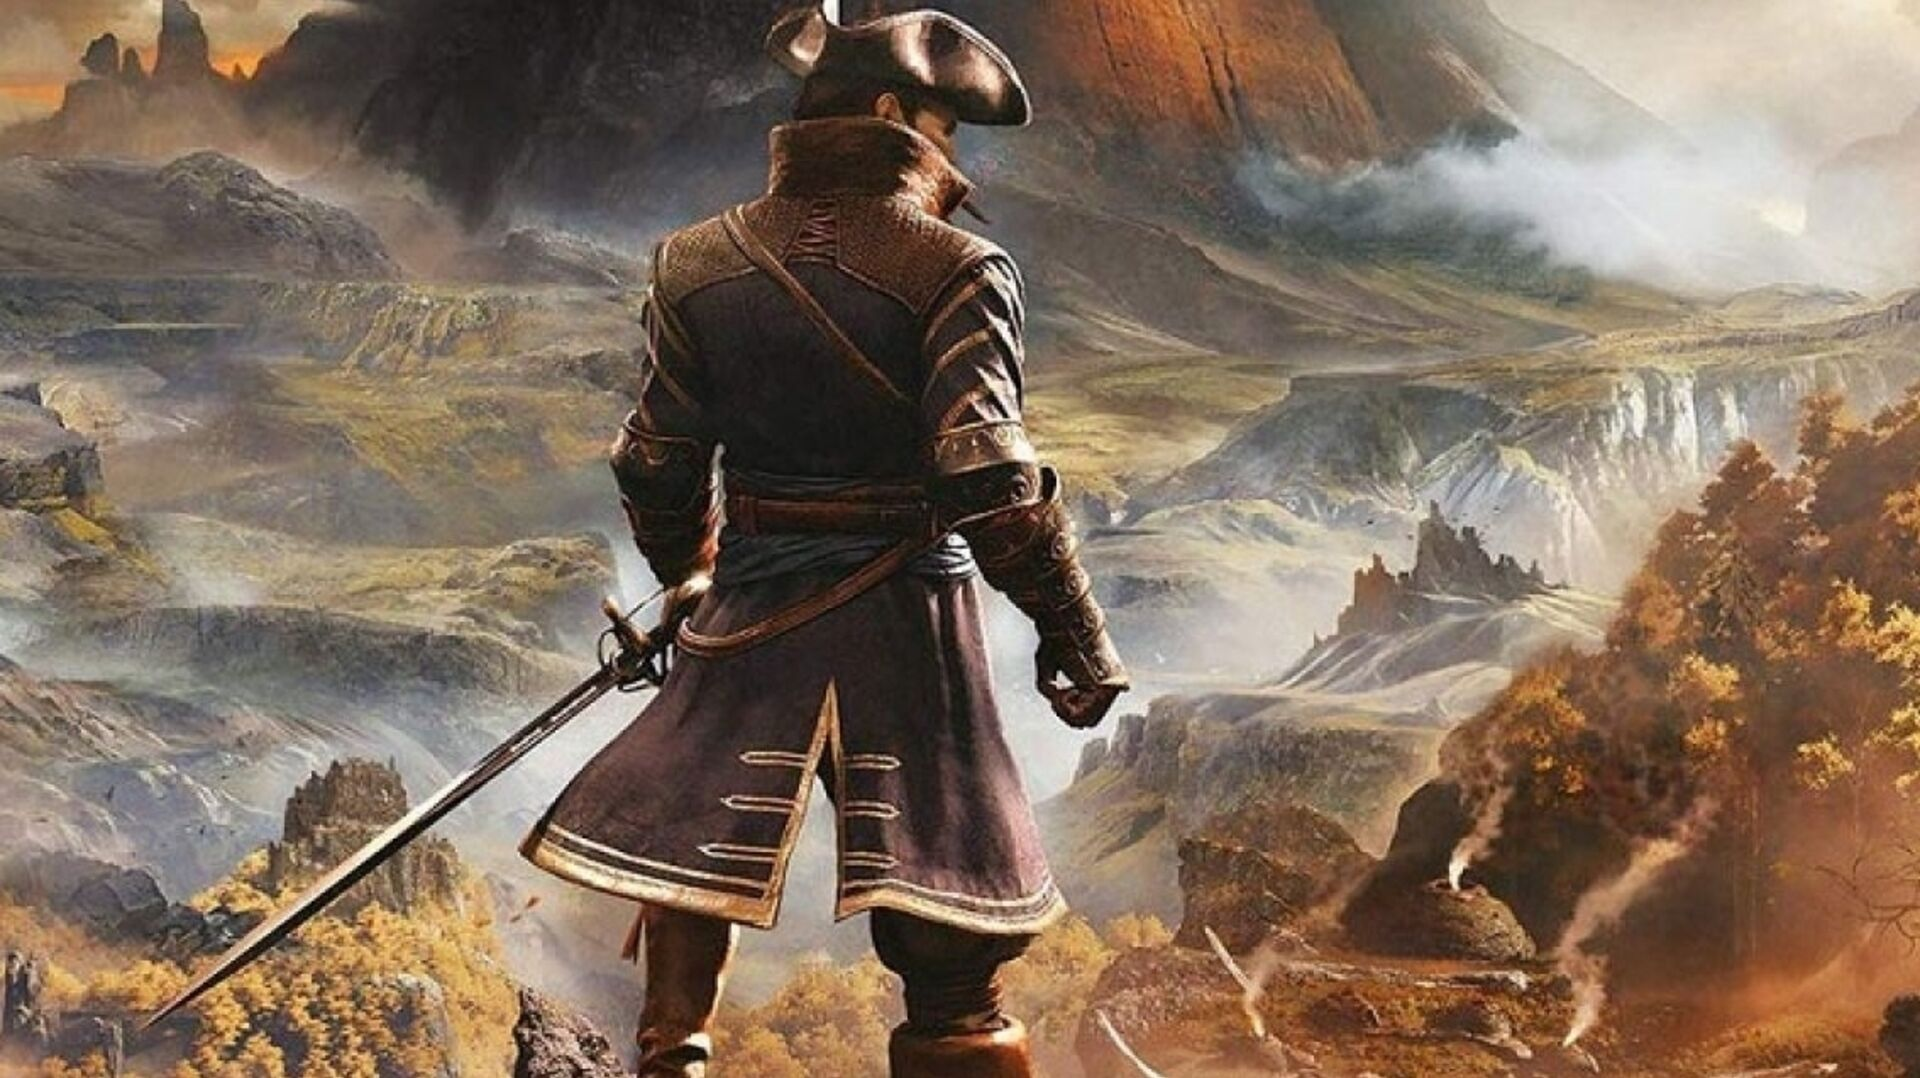 Greedfall review - technical shortcomings are overcome by an